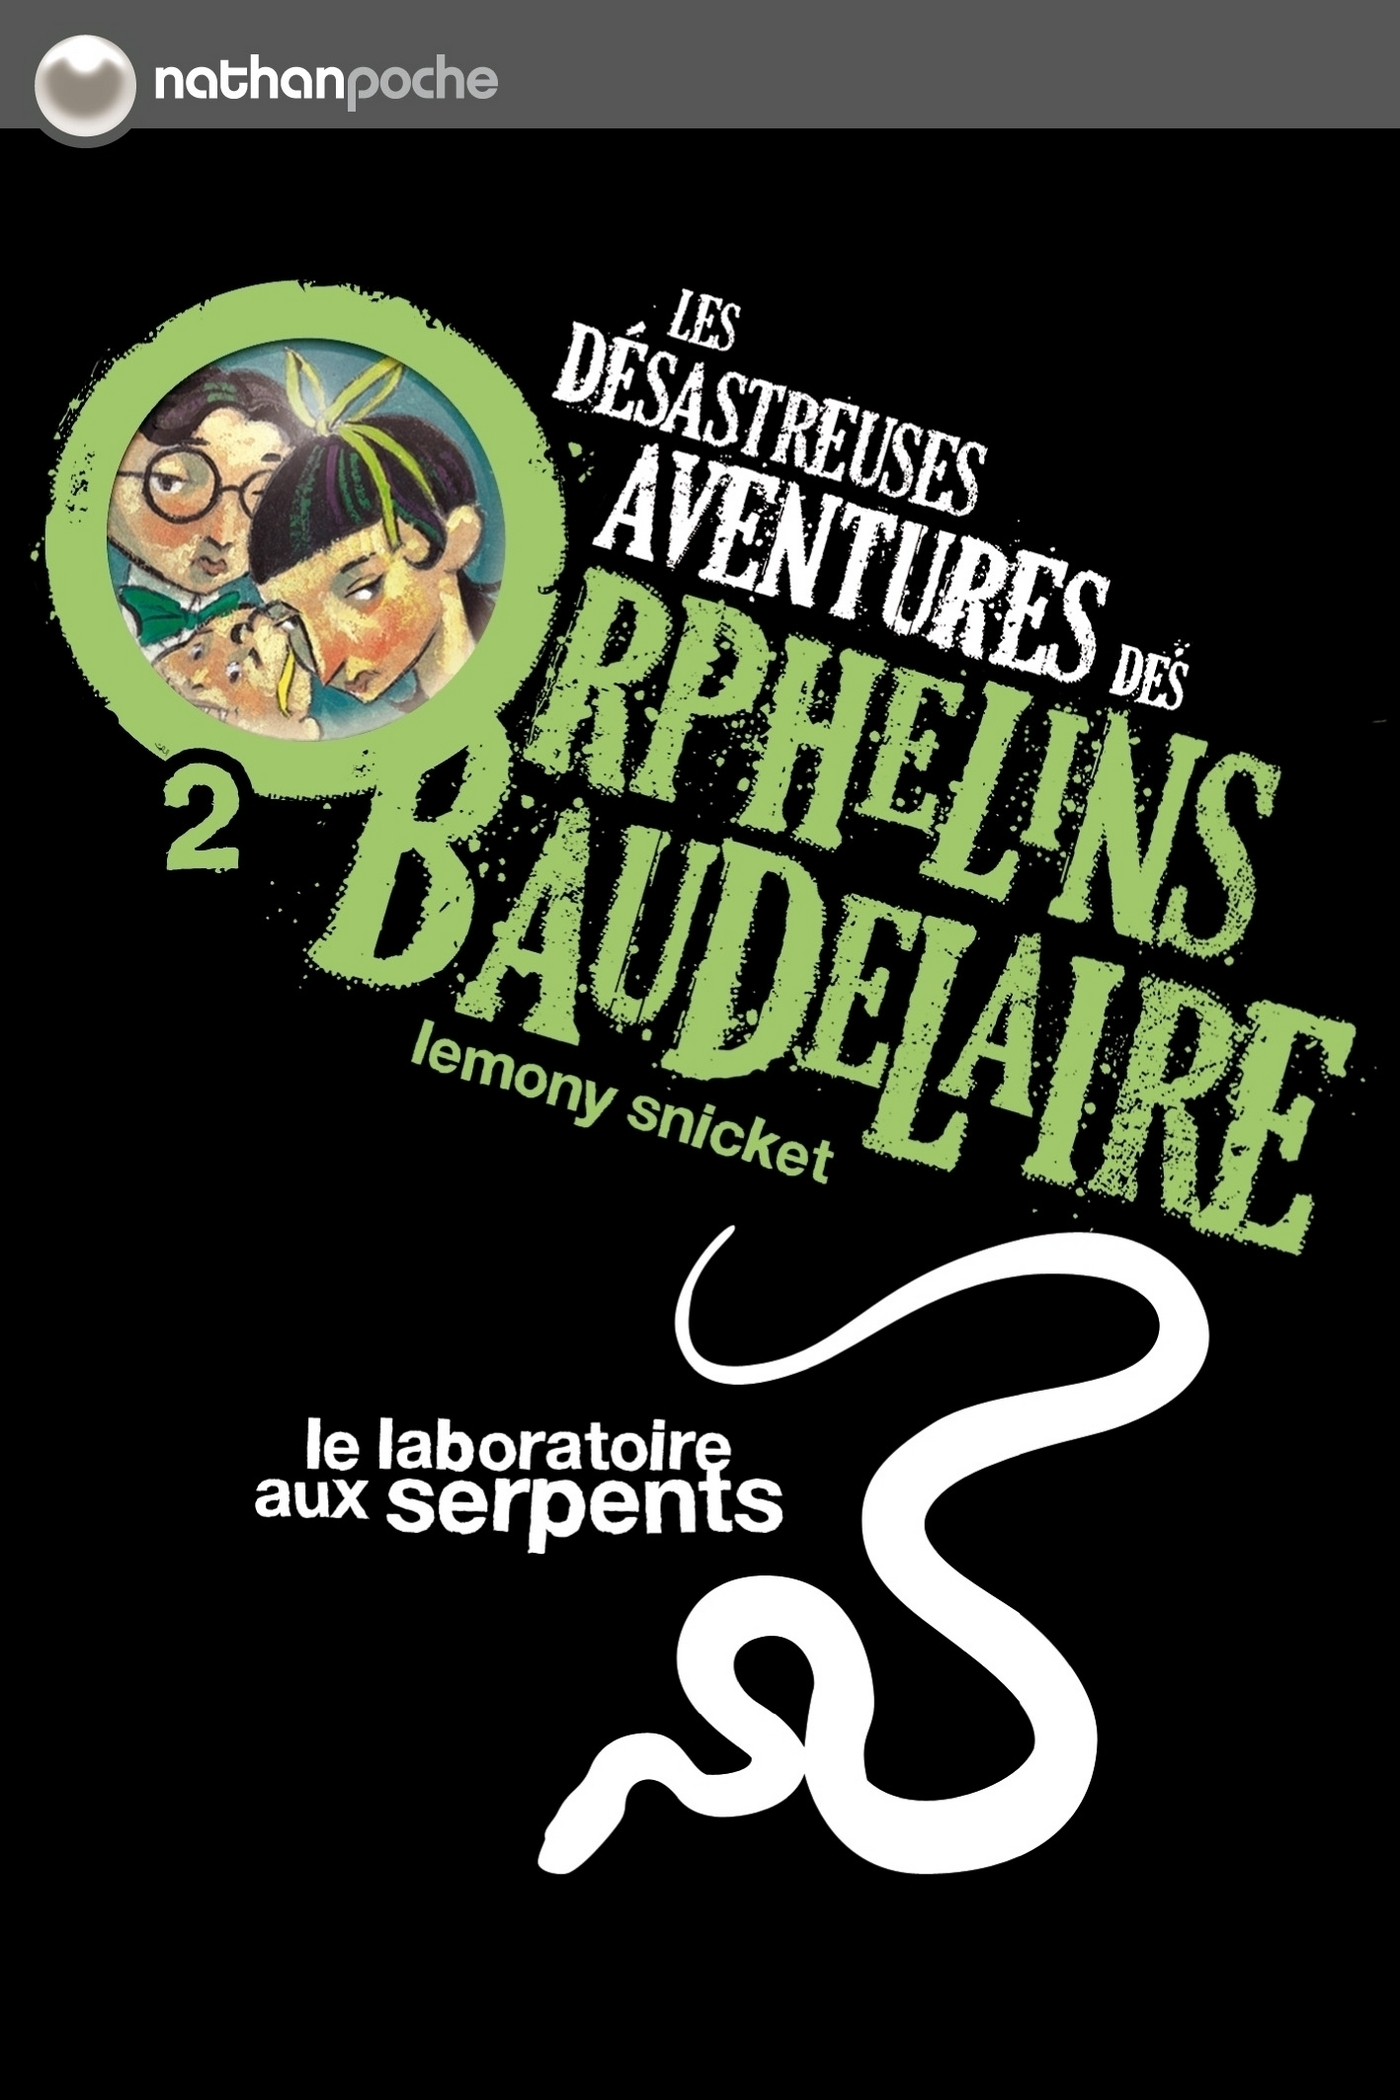 Le laboratoire aux serpents